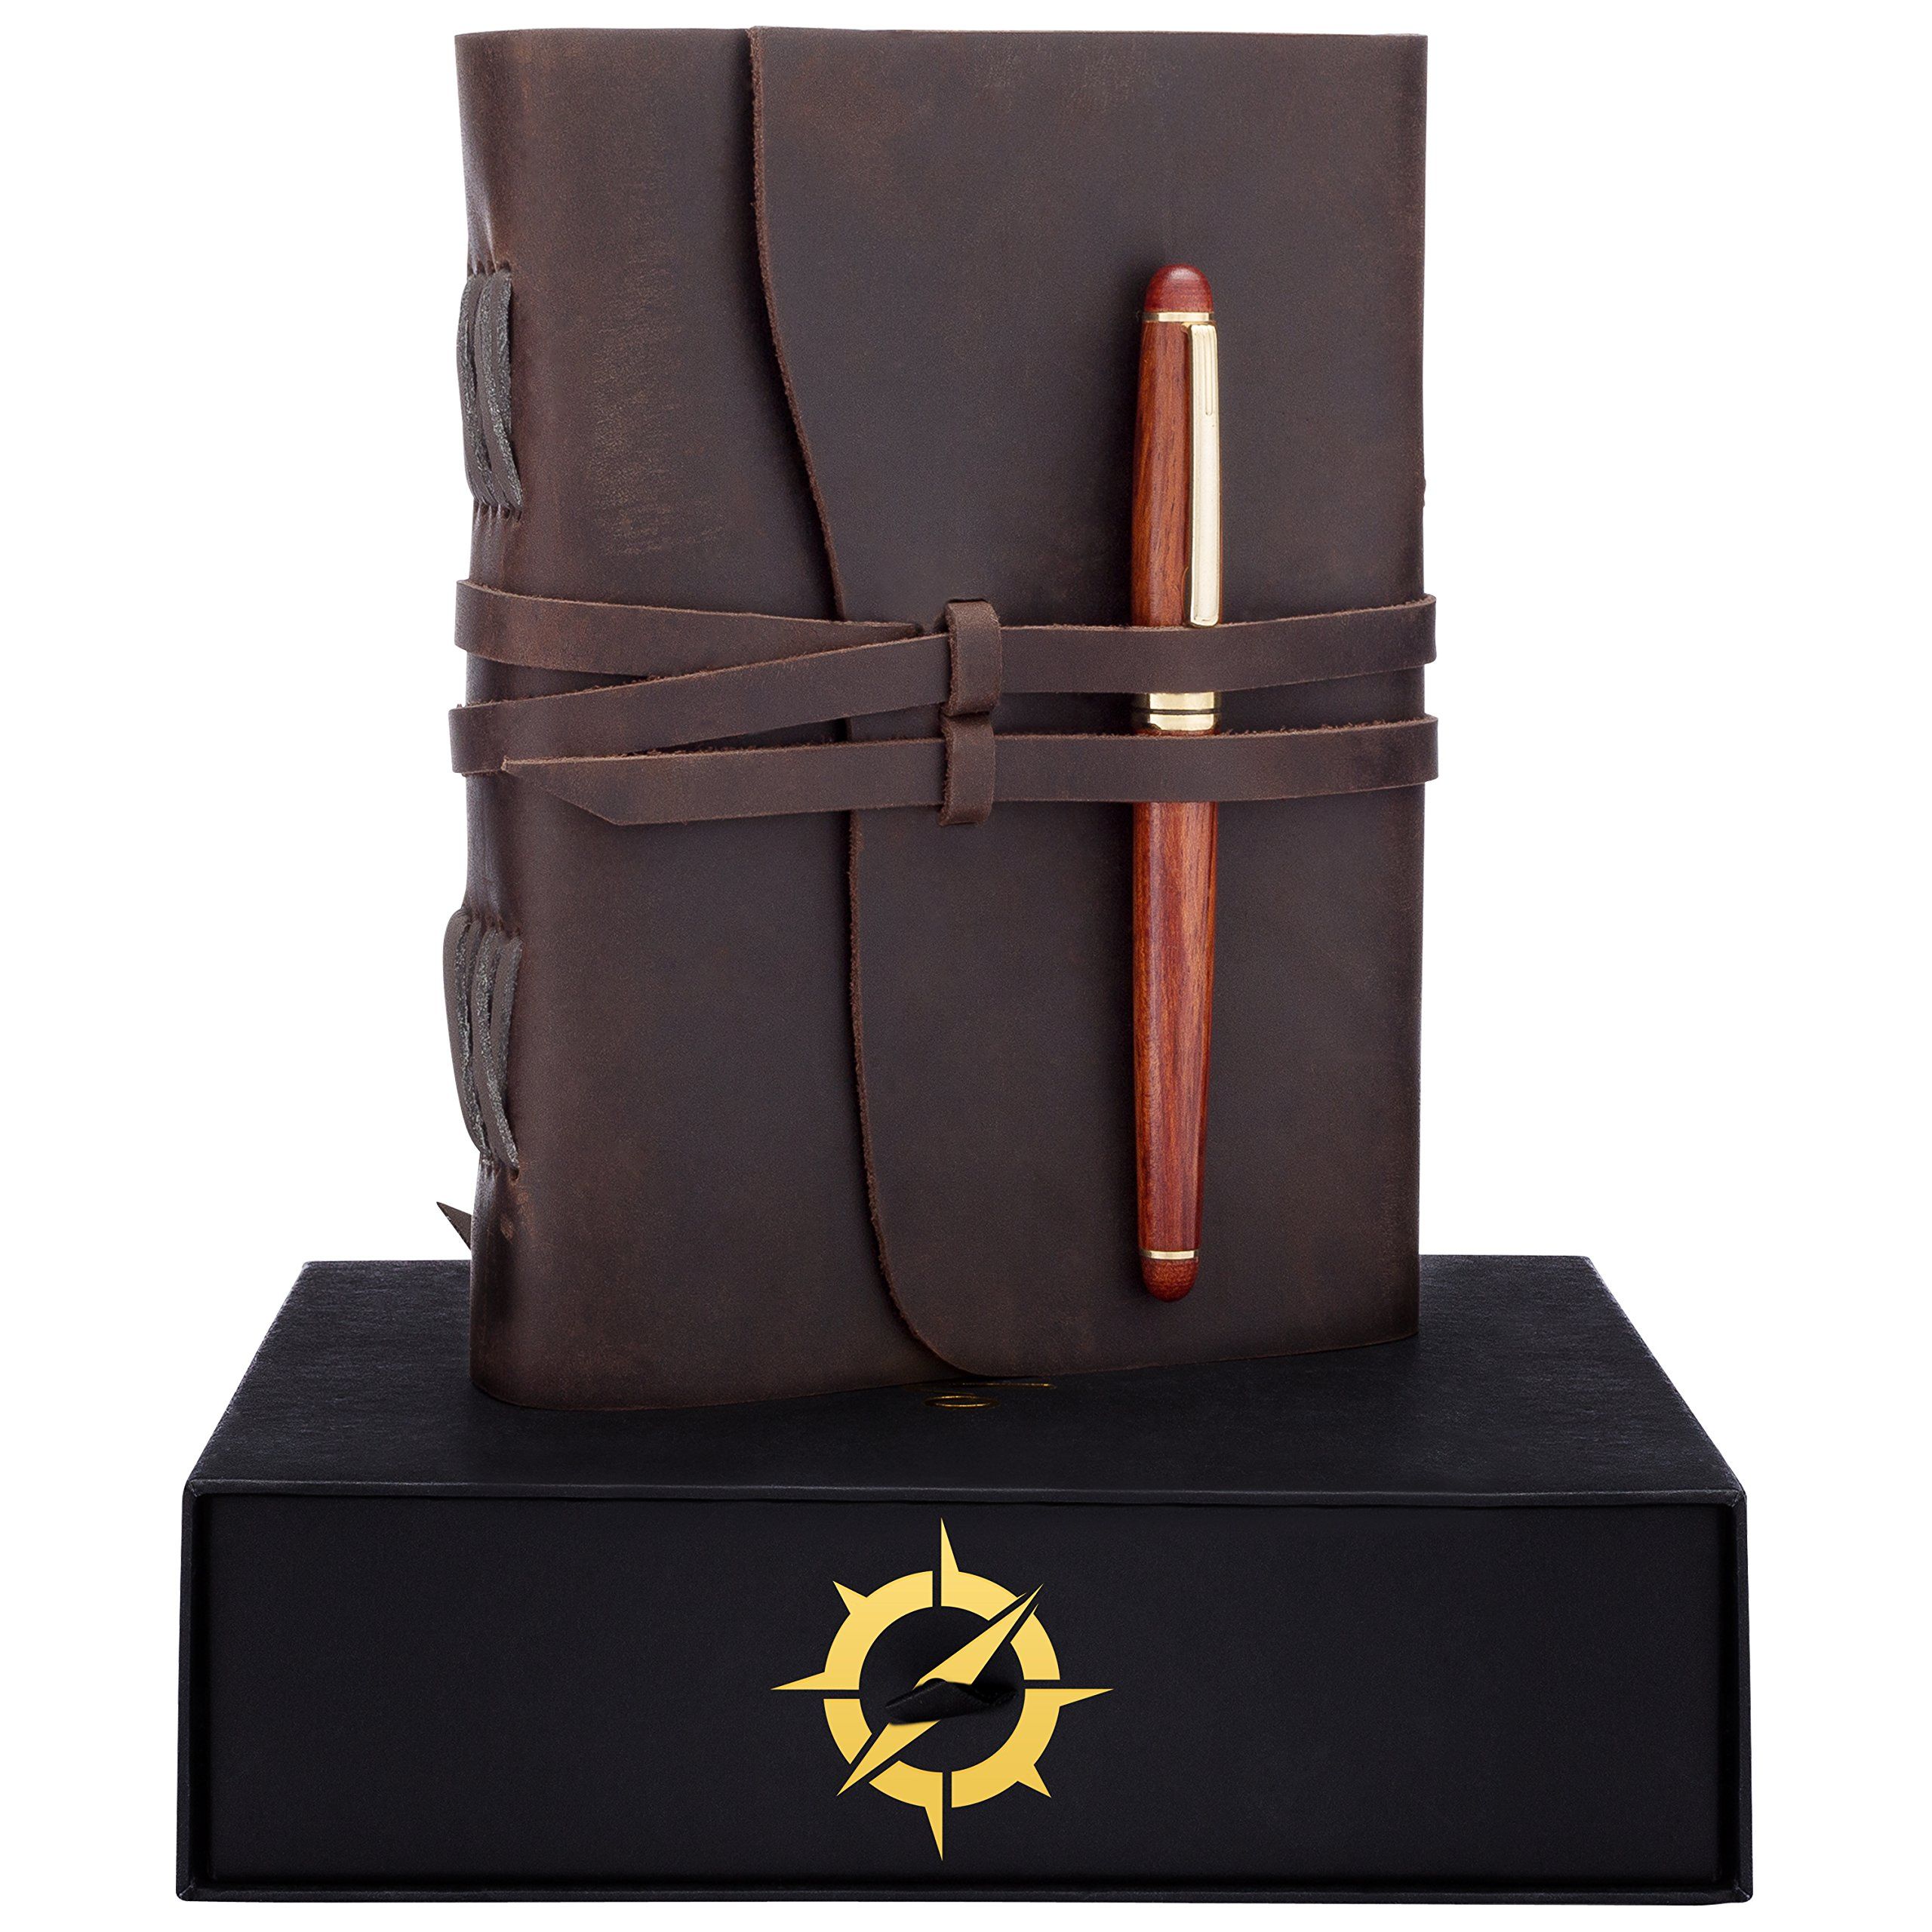 Leather Journal Gift Set RoseWood Pen â Handmade Unique Gifts Ideas, Best Personalized Anniversary Birthday gifts for Men Women, Graduation Gifts for Him Her, Luxury Presents, Refillable Notebook